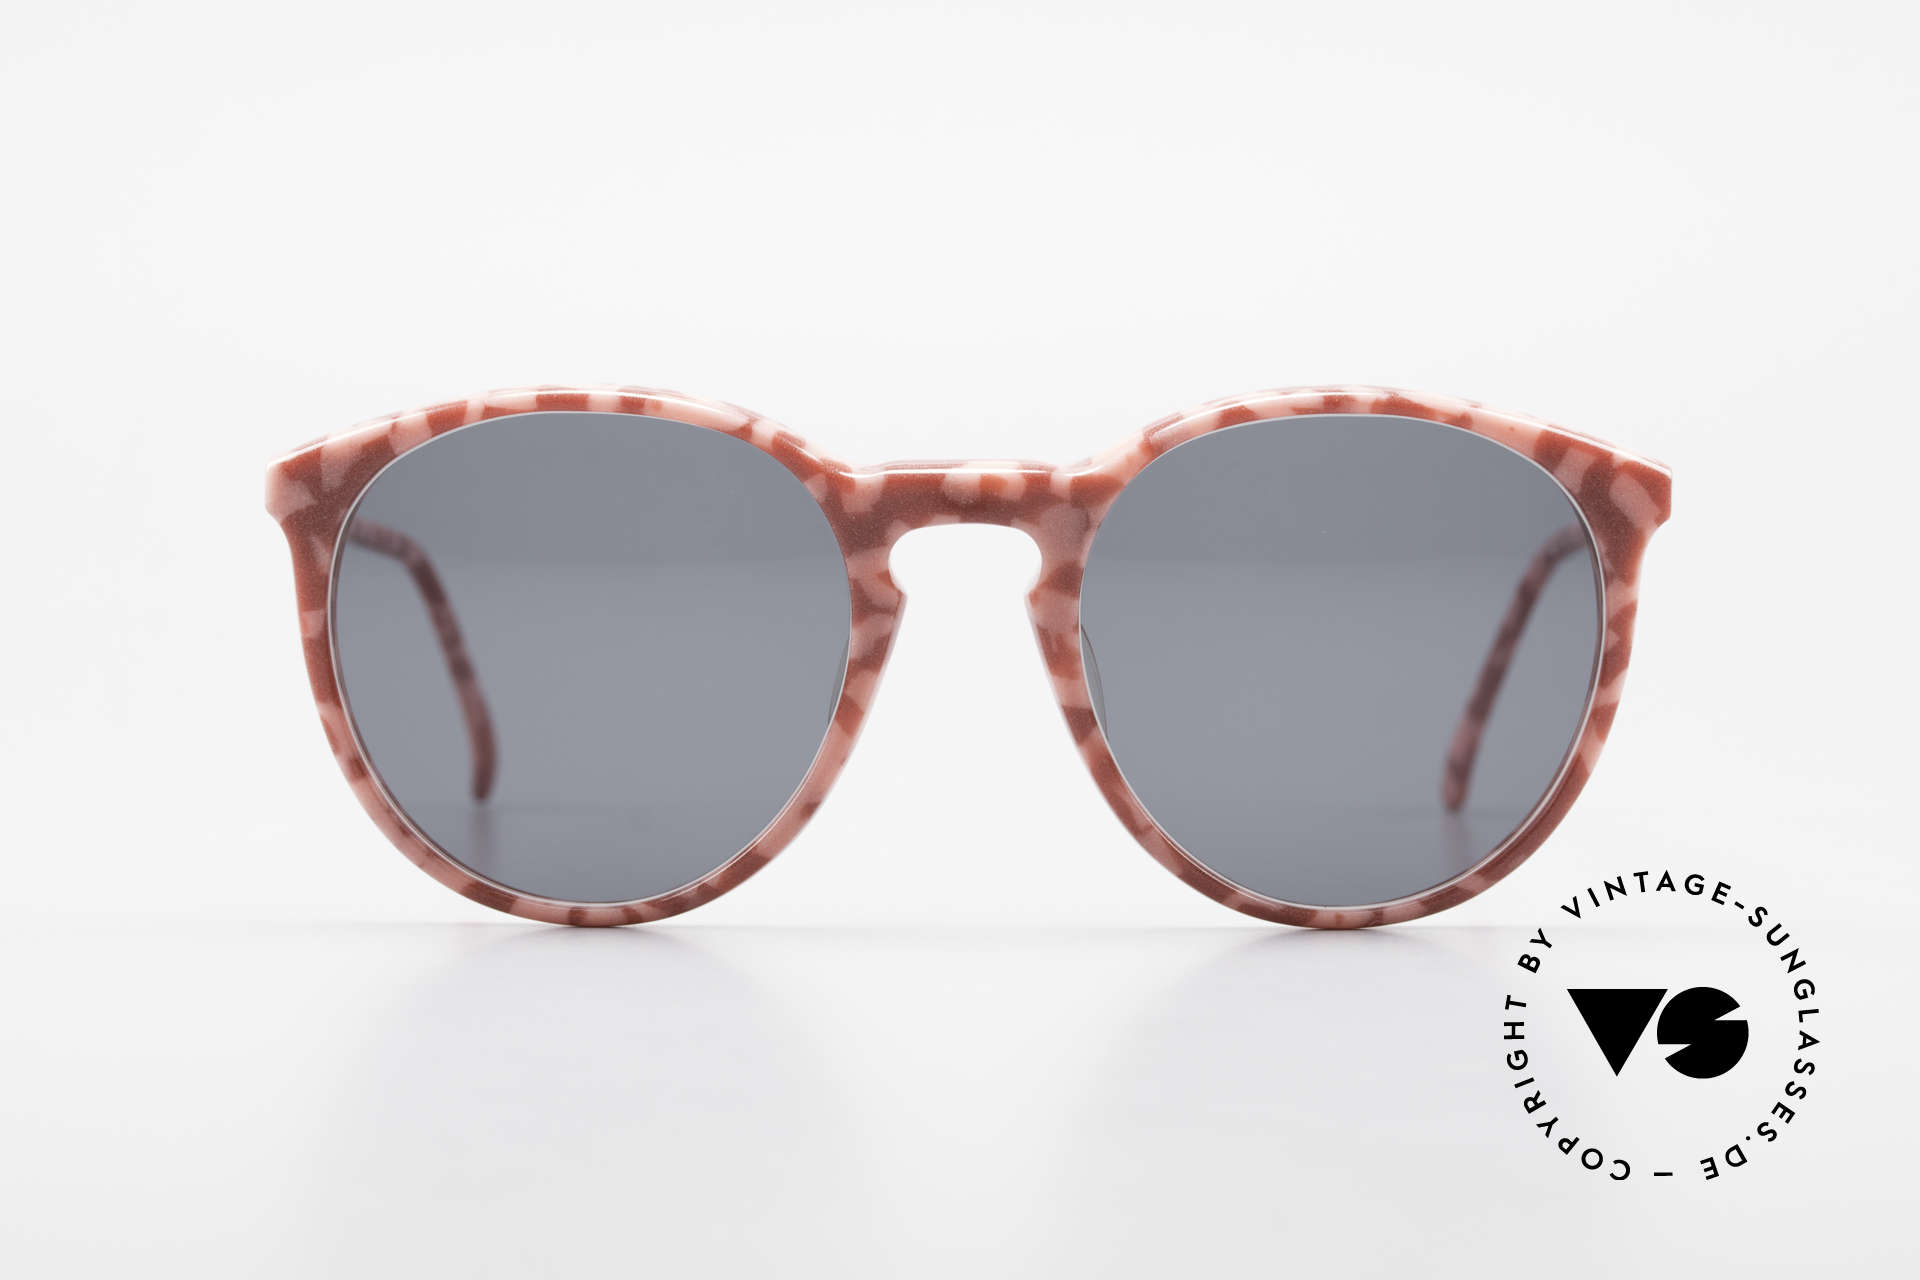 Alain Mikli 901 / 172 Panto Frame Red Pink Marbled, classic 'panto'-design with solid gray sun lenses, Made for Women